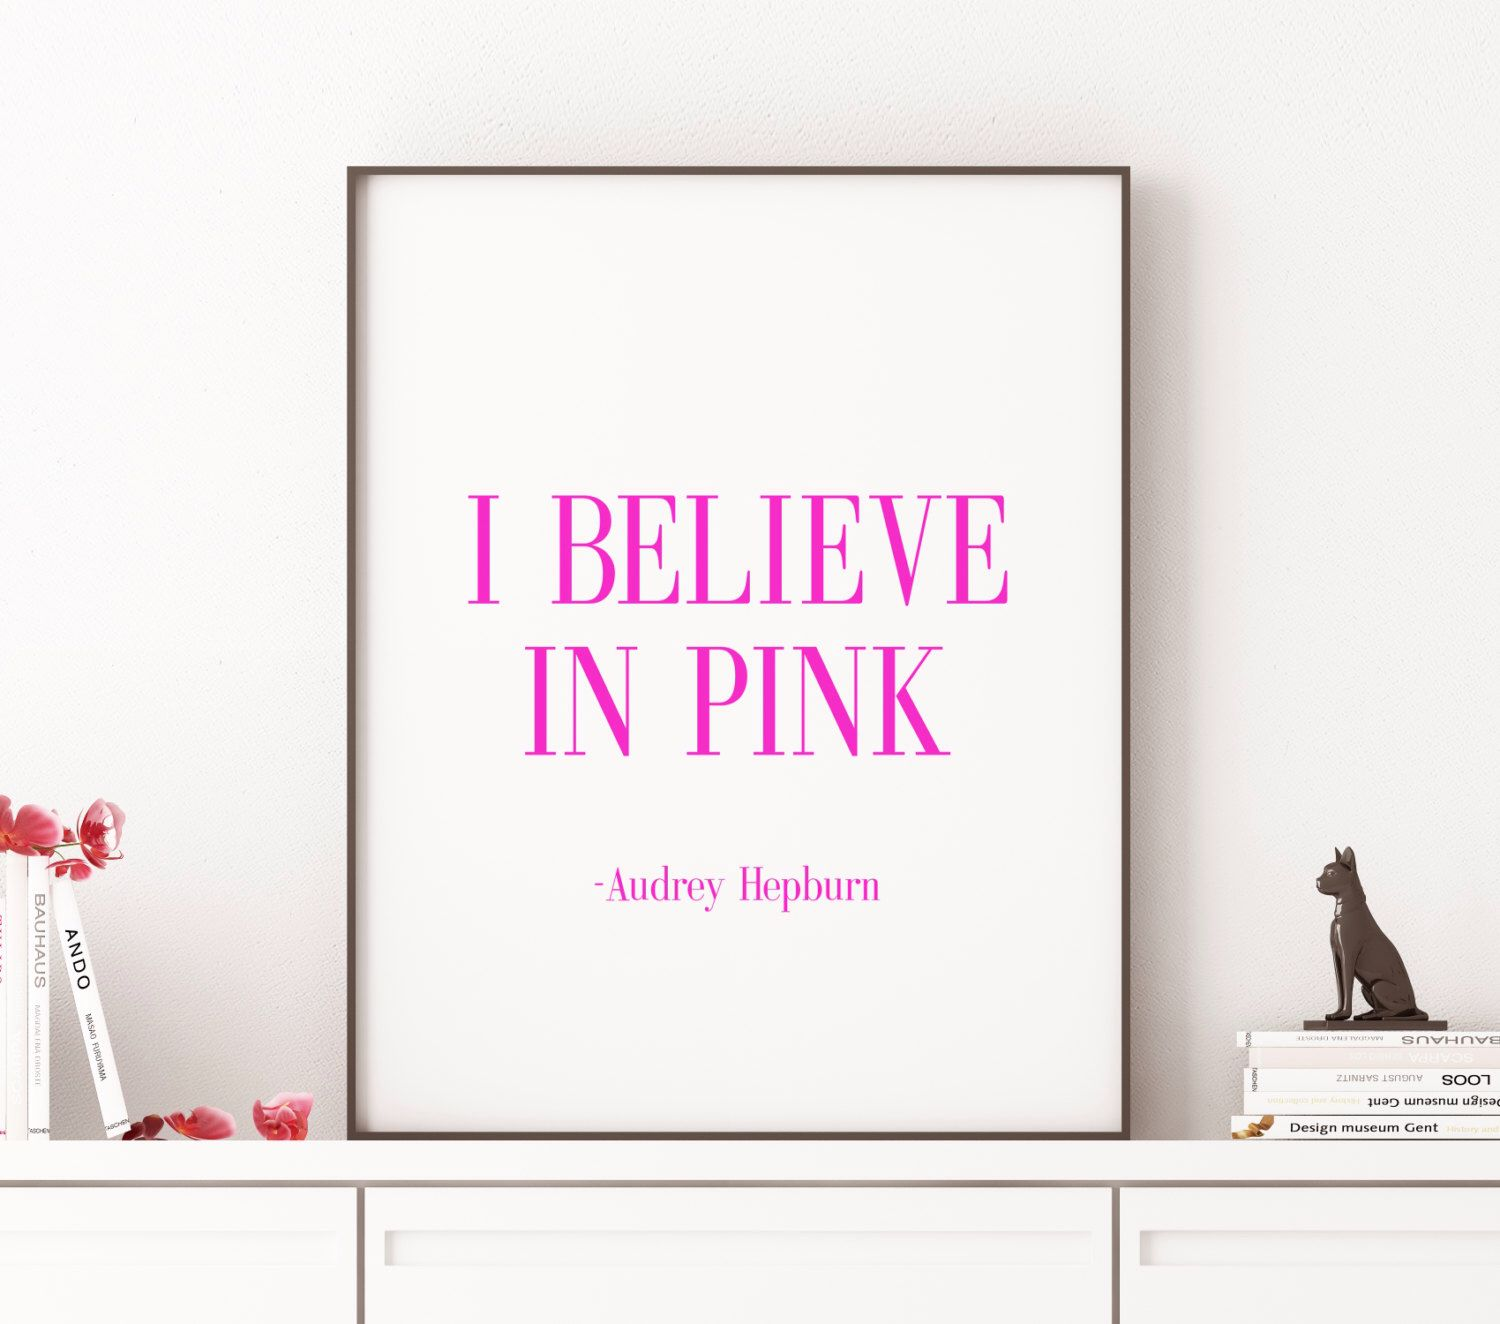 Girly Bedroom Audrey Hepburn Poster: Pin By Kayleigh J On Home Decor In 2019